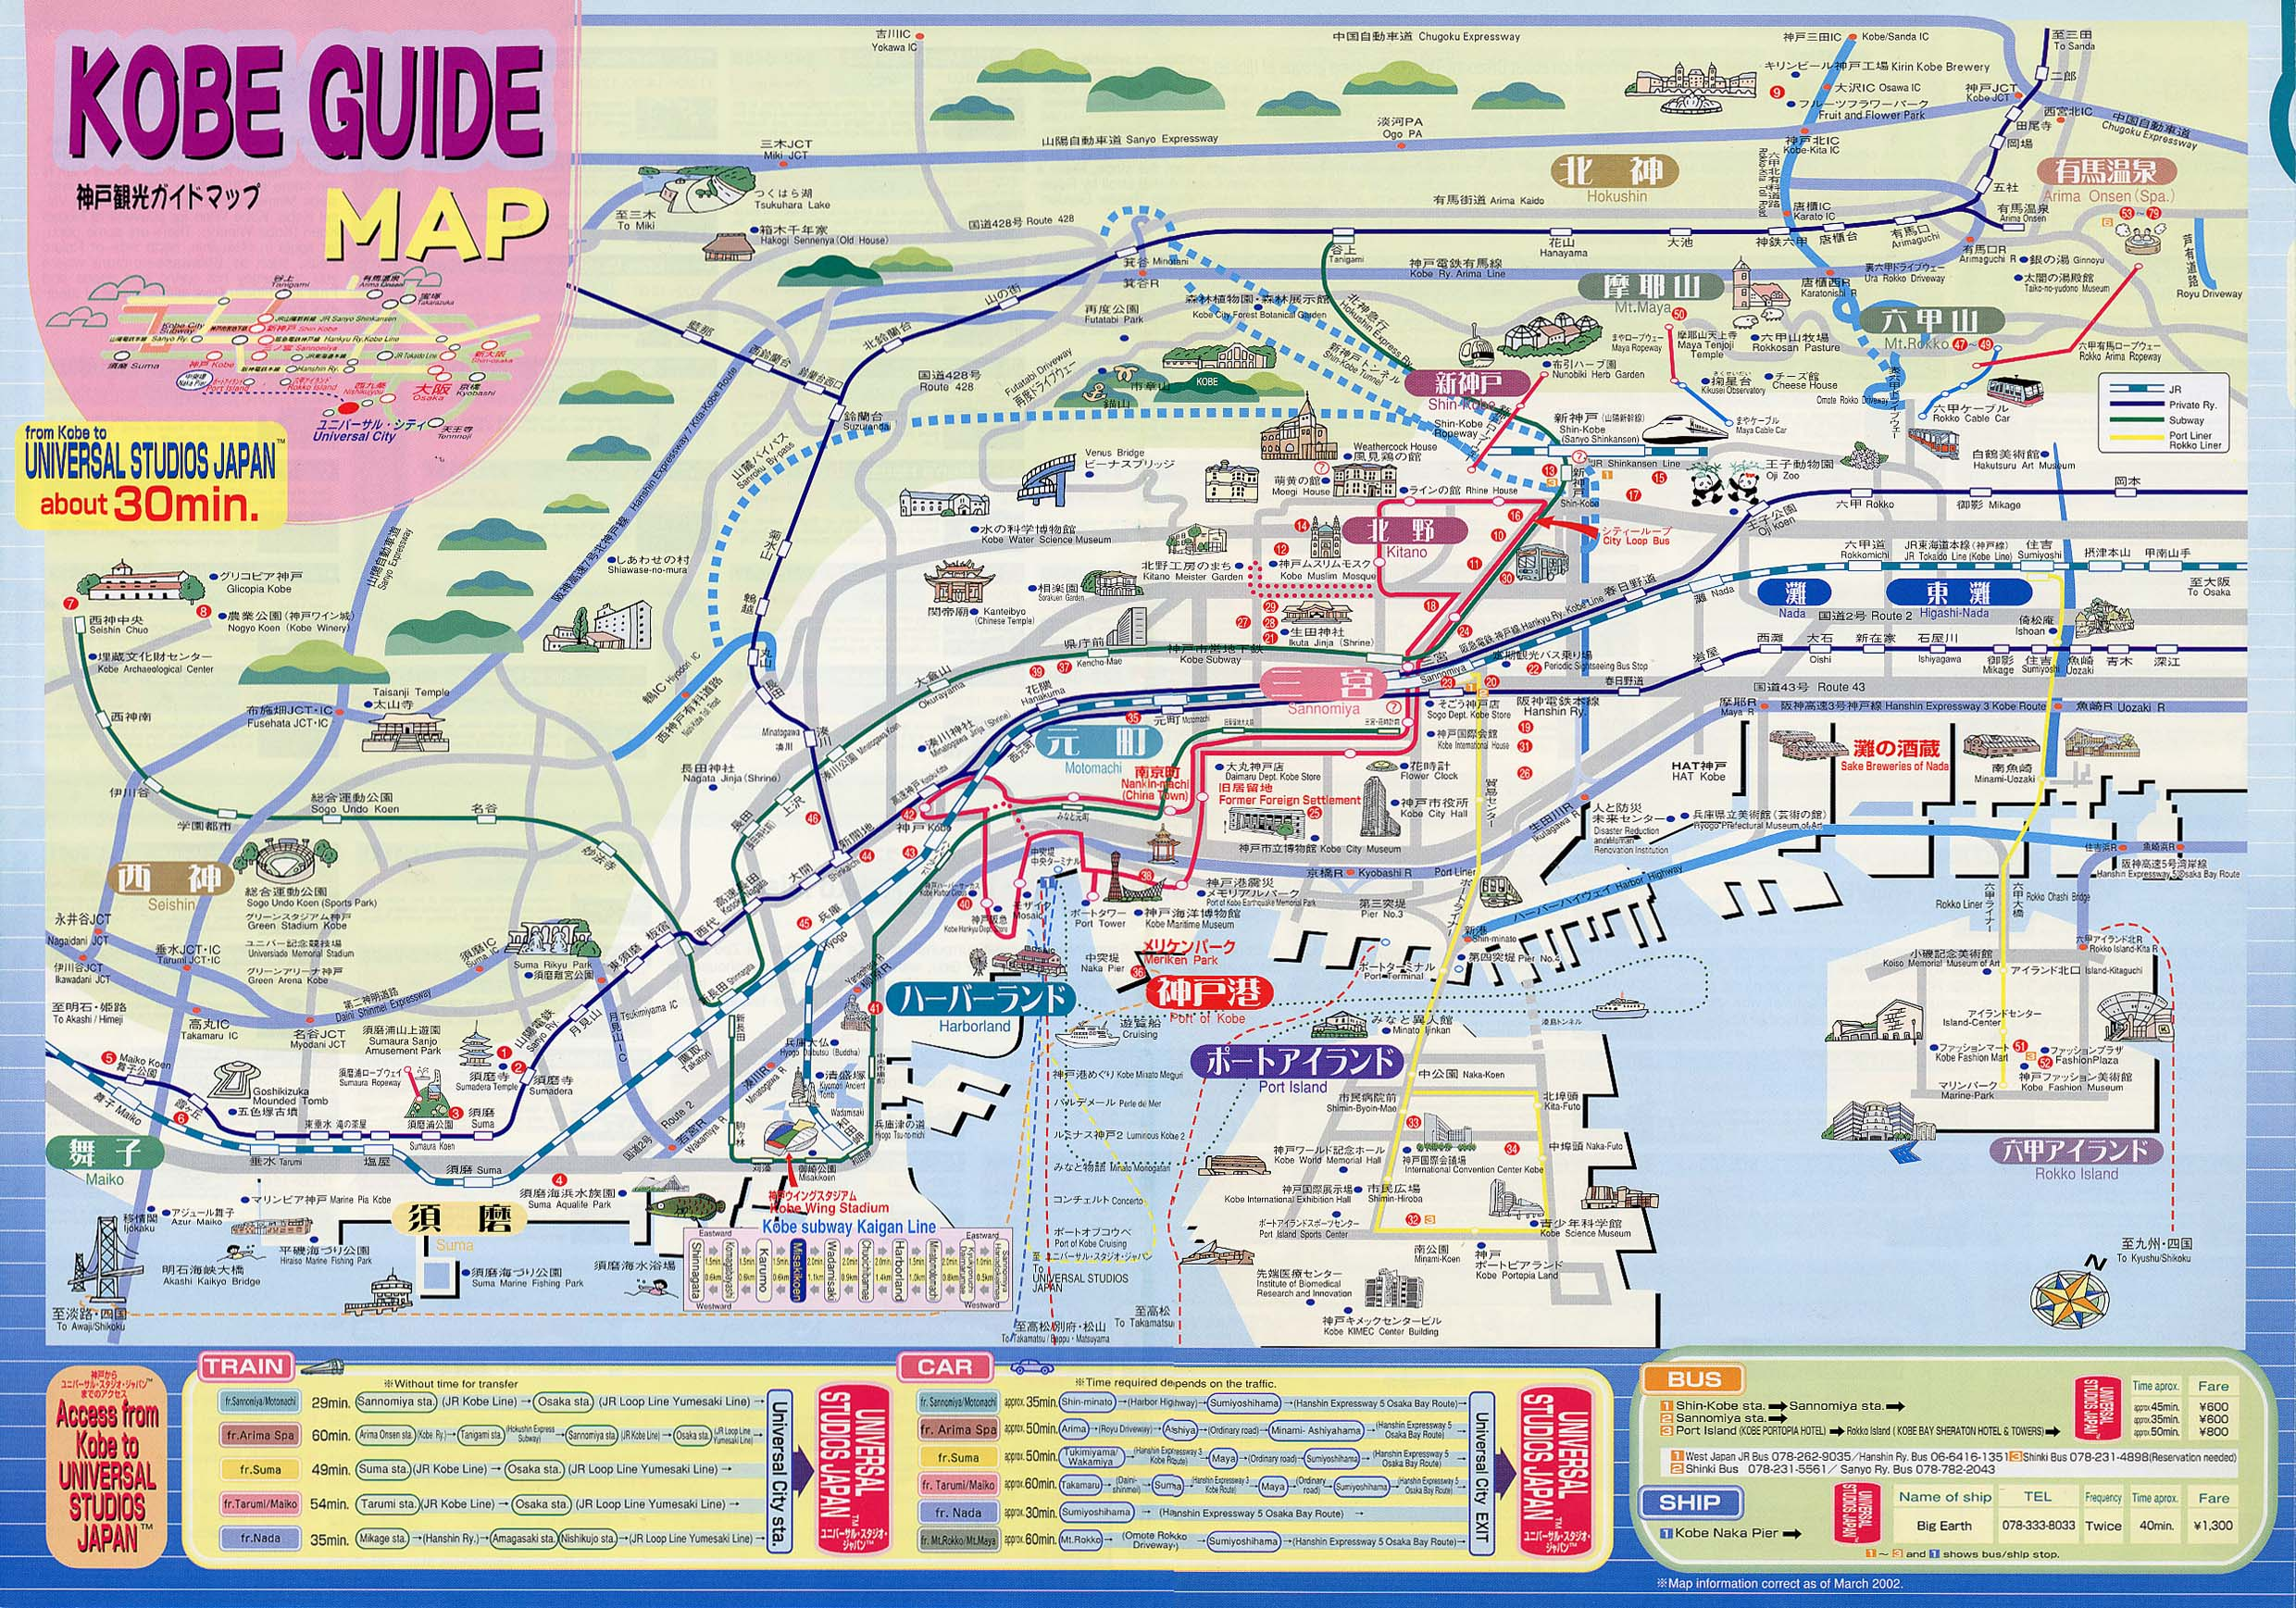 Kobe Tourist Map Kobe Japan mappery